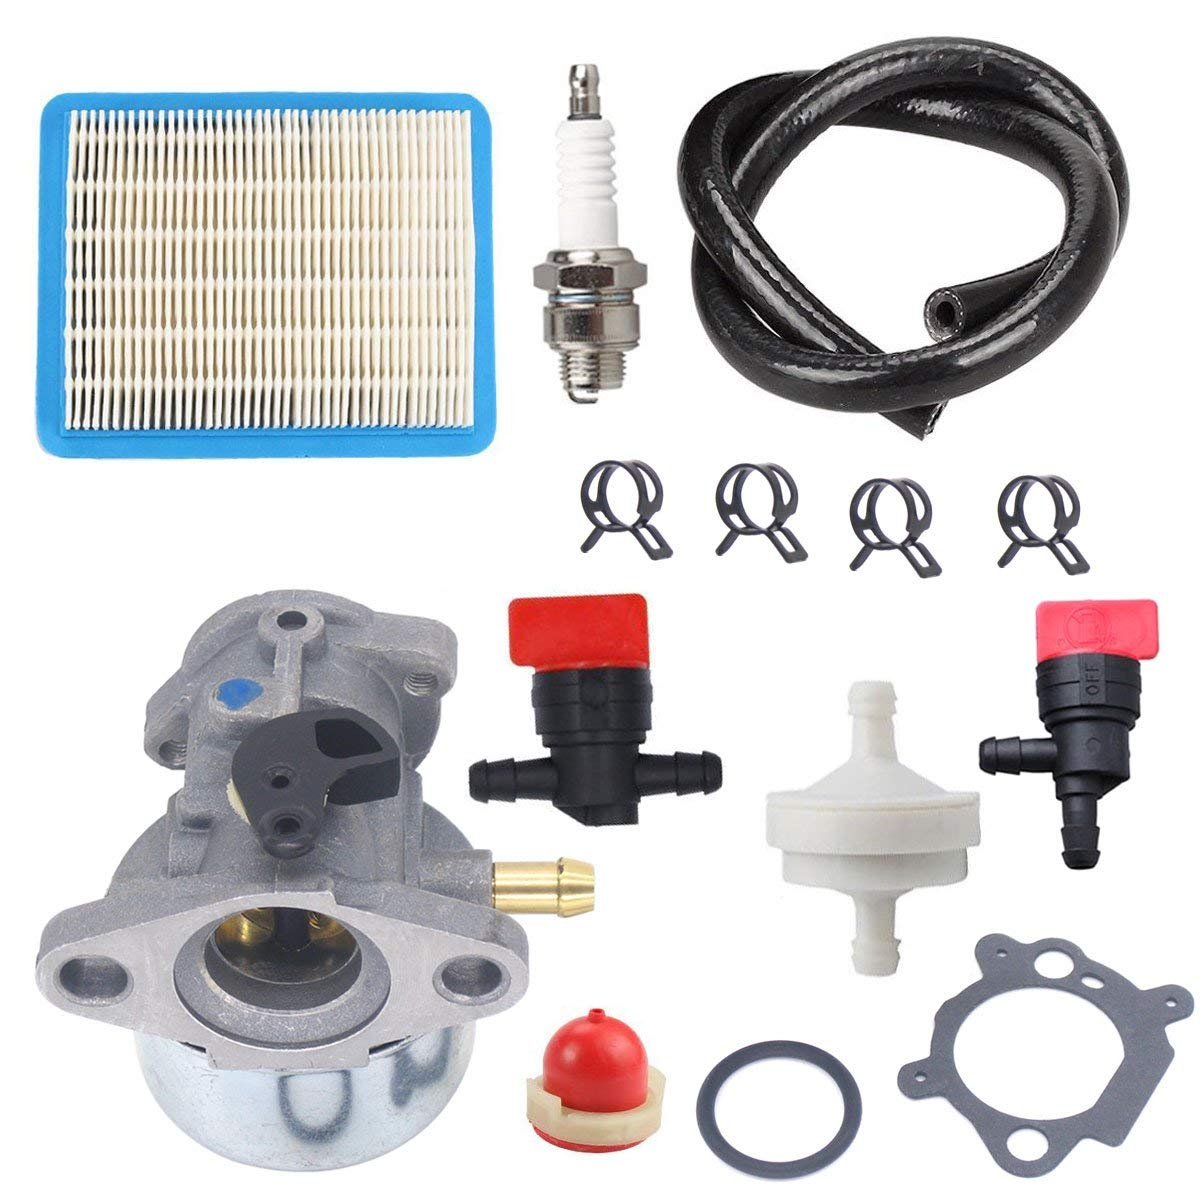 Atoparts 799868 Carburetor With 491588 Air Filter 694395 Primer Bulb 298090S Fuel Filter Shut Off Valve Fit Briggs & Stratton 4 5 6 7 Hp Engines